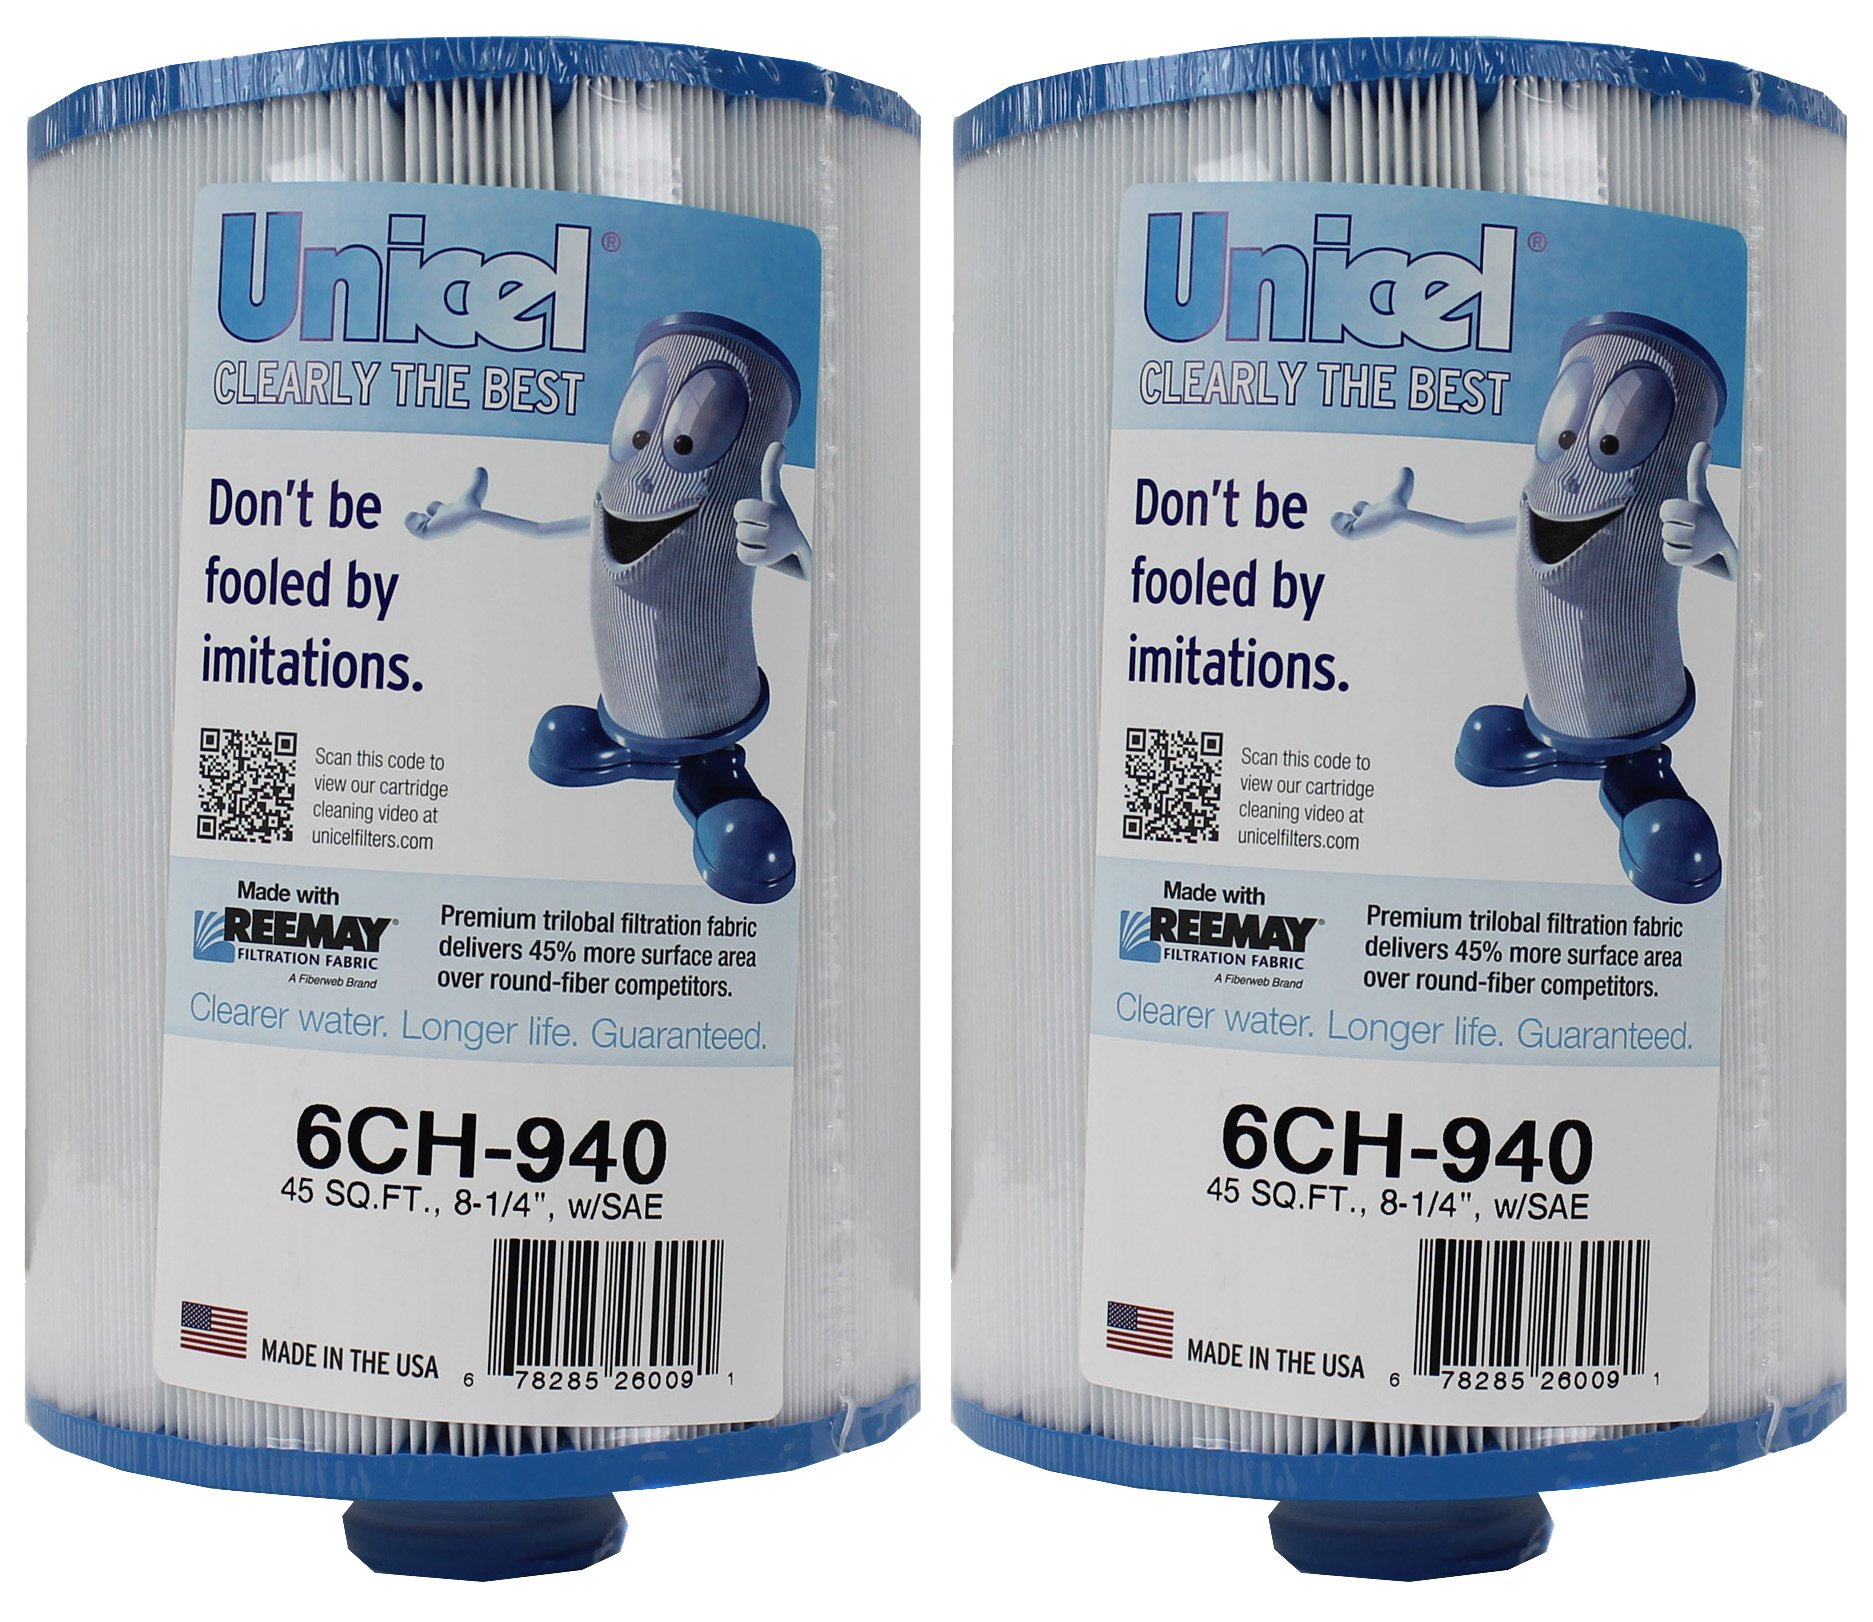 2 New Unicel 6CH-940 Waterway Vita Aber Spa Filter Replacement Cartridges 6CH940 by Unicel